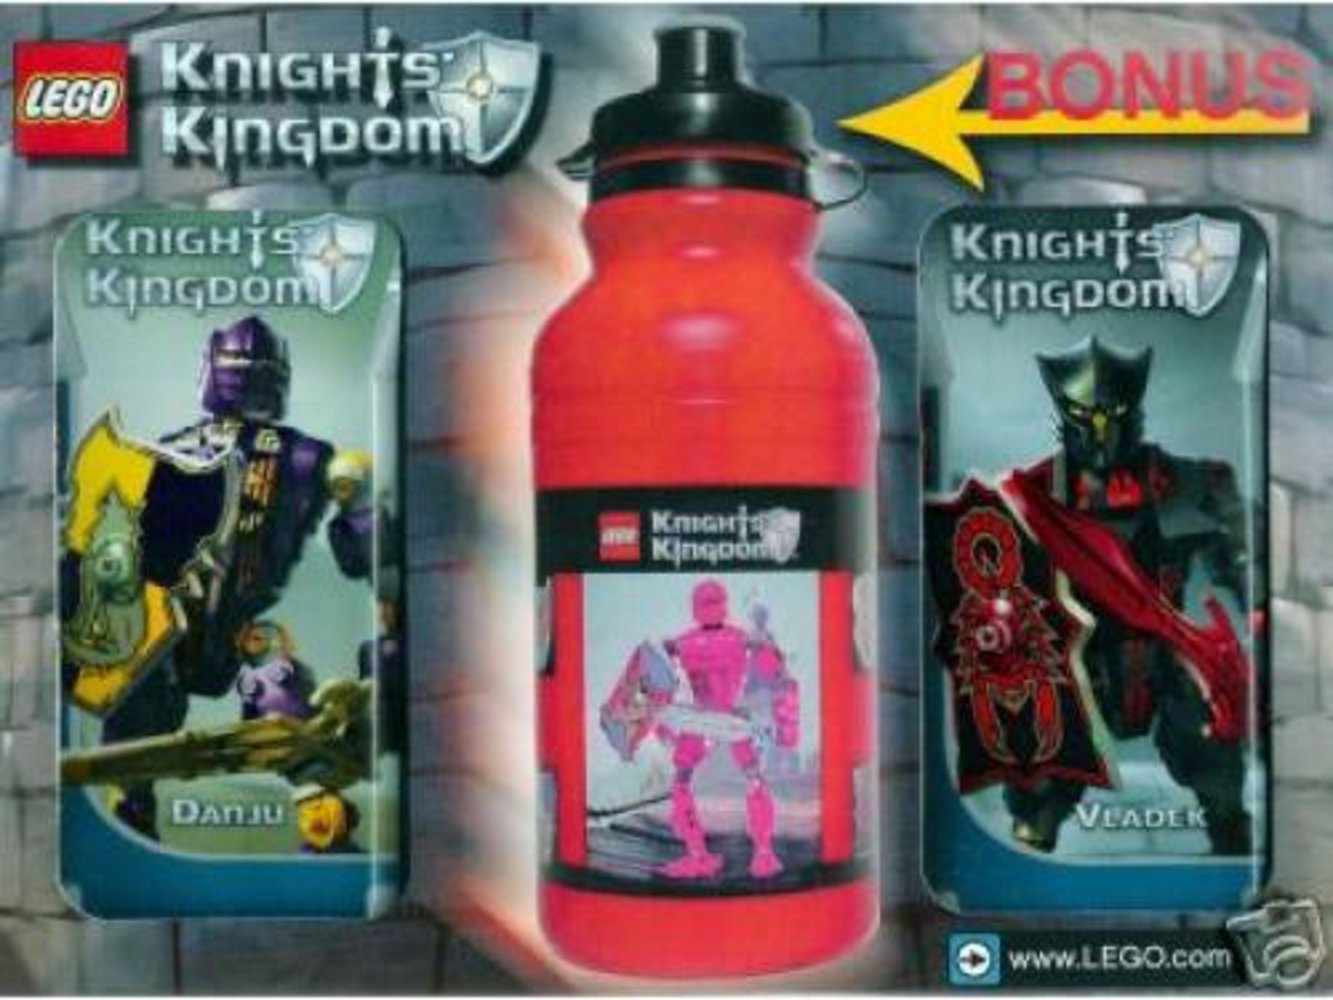 Knights' Kingdom Value Pack 1 (with bonus water bottle)